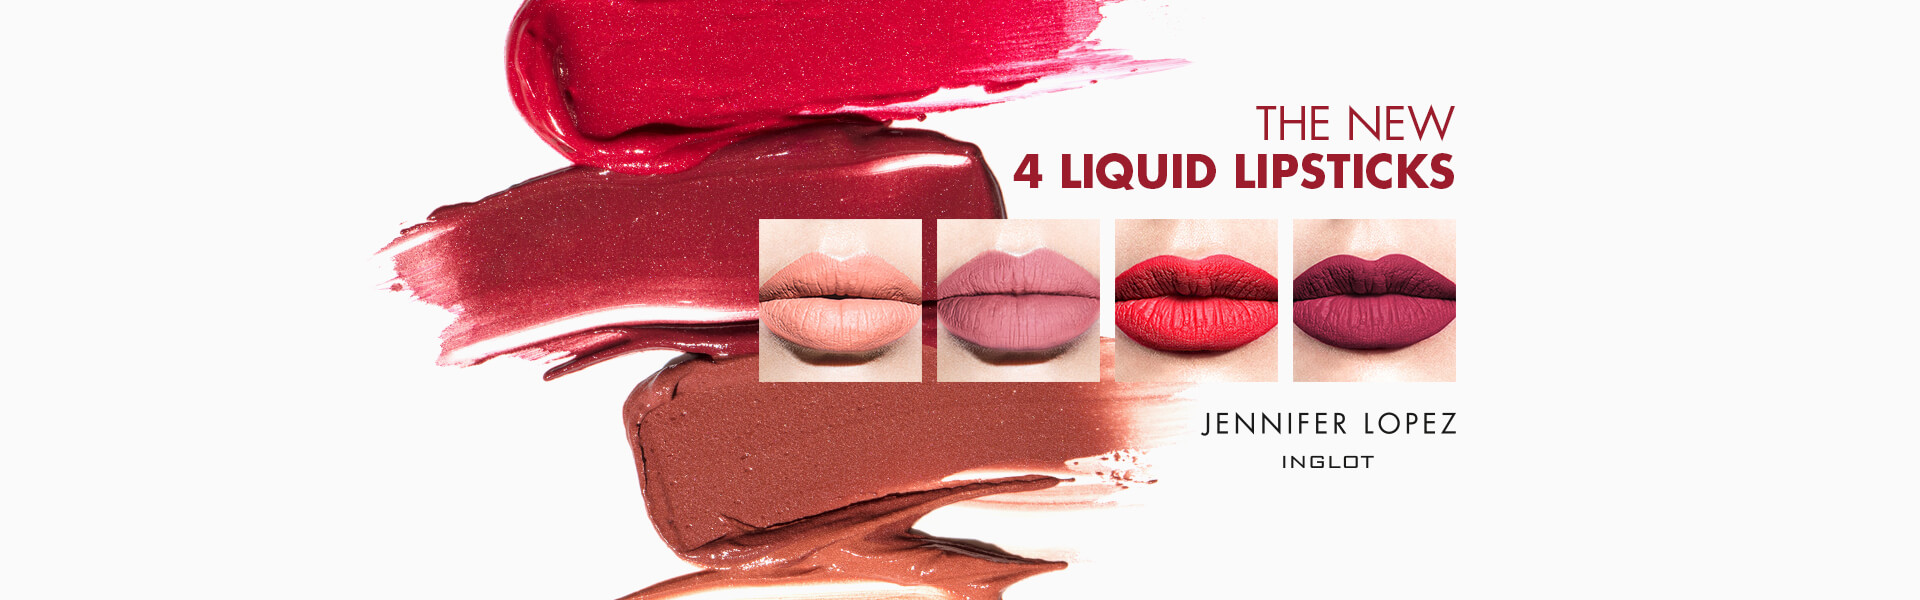 The new 4 Liquid Lipsticks